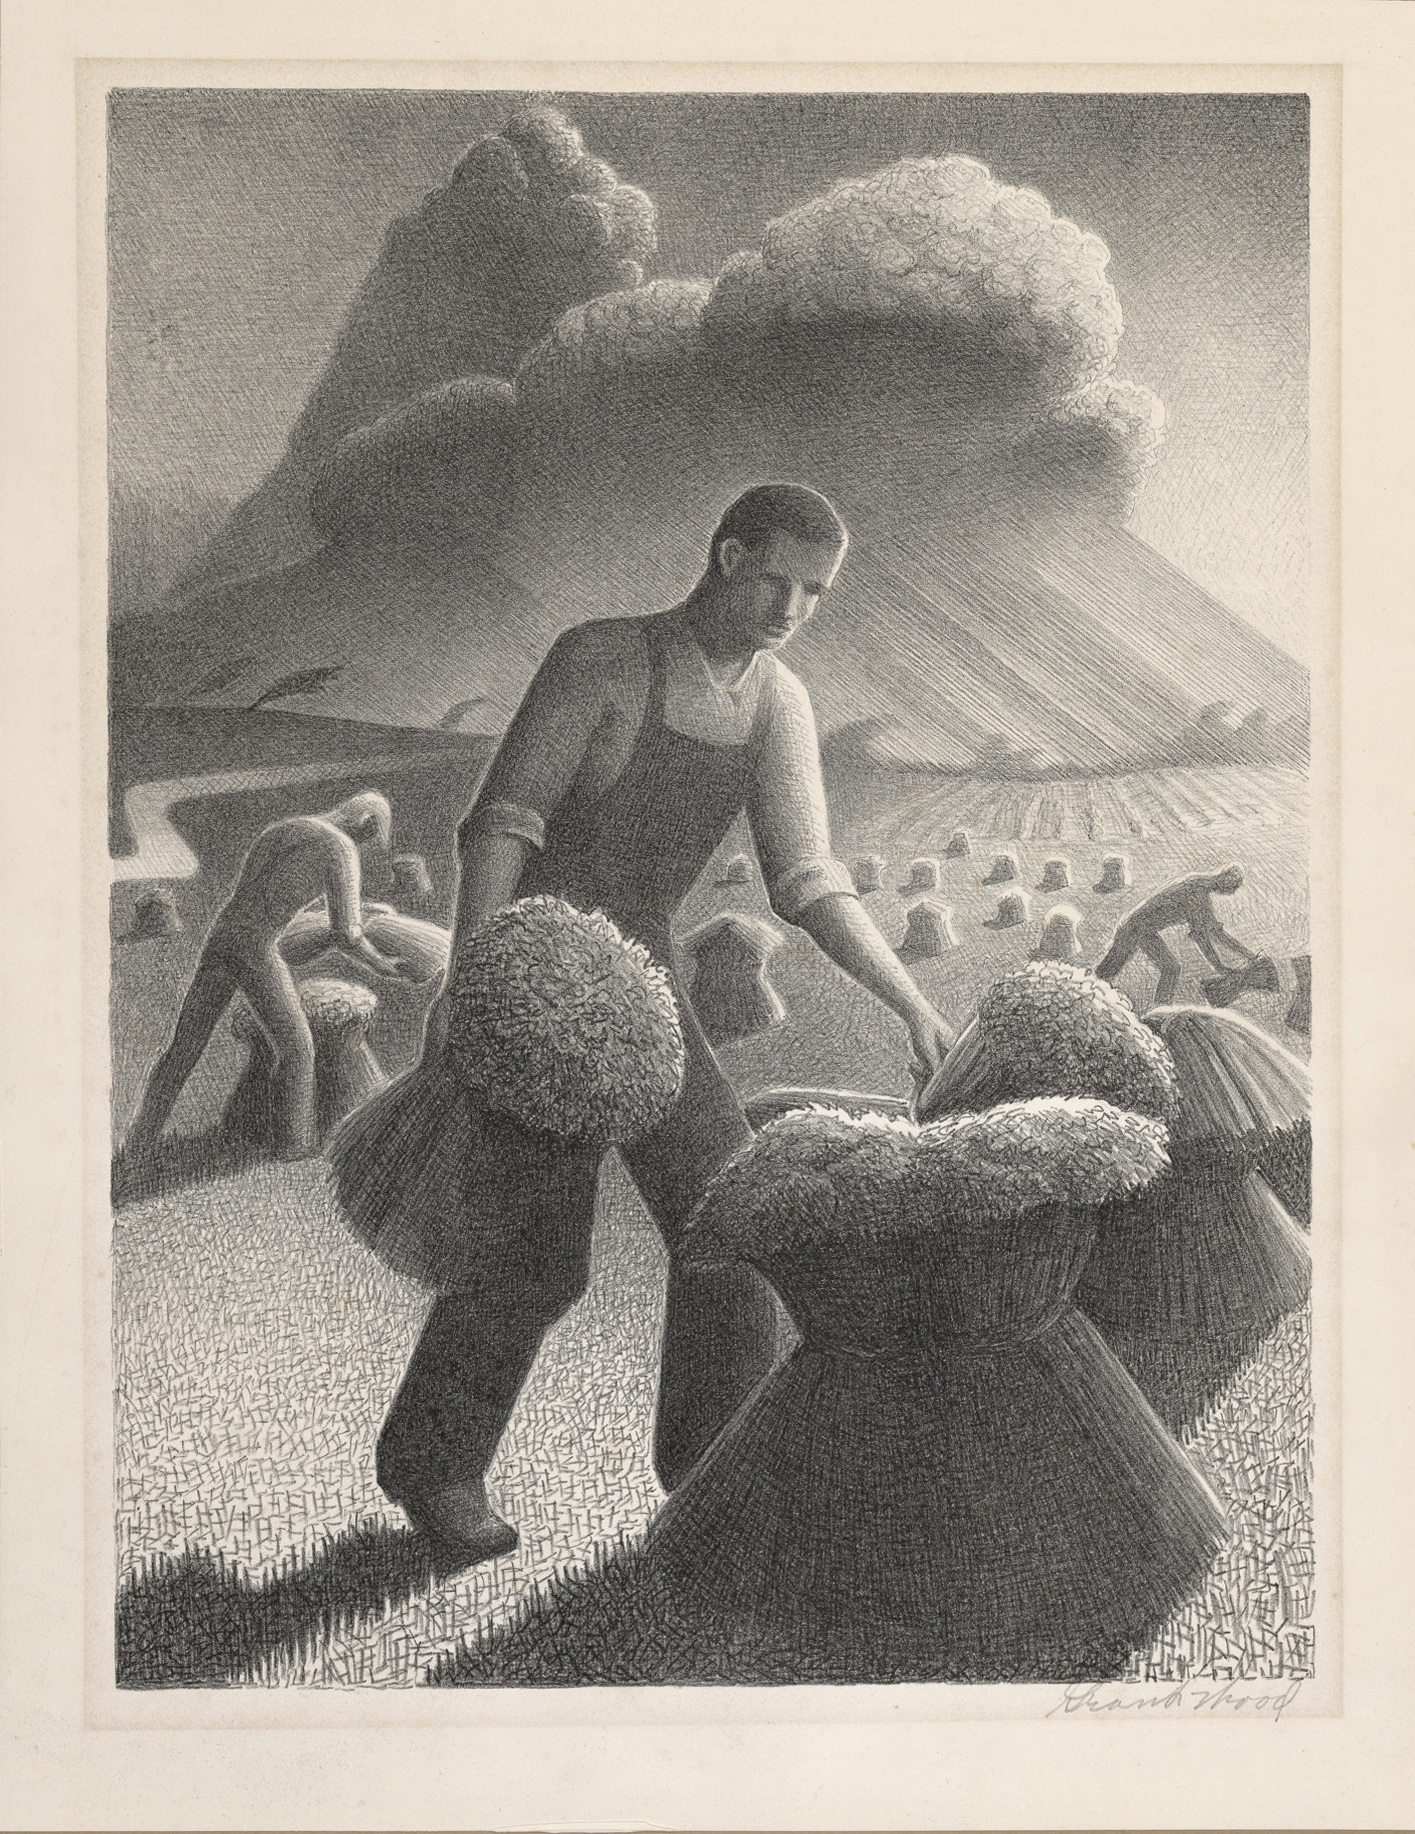 Grant Wood, Approaching Storm, 1940. Lithograph, 11 3/4 x 8 7/8 in. Gift of Susan and Stuart Crampton, Class of 1958. M.2003.17.3